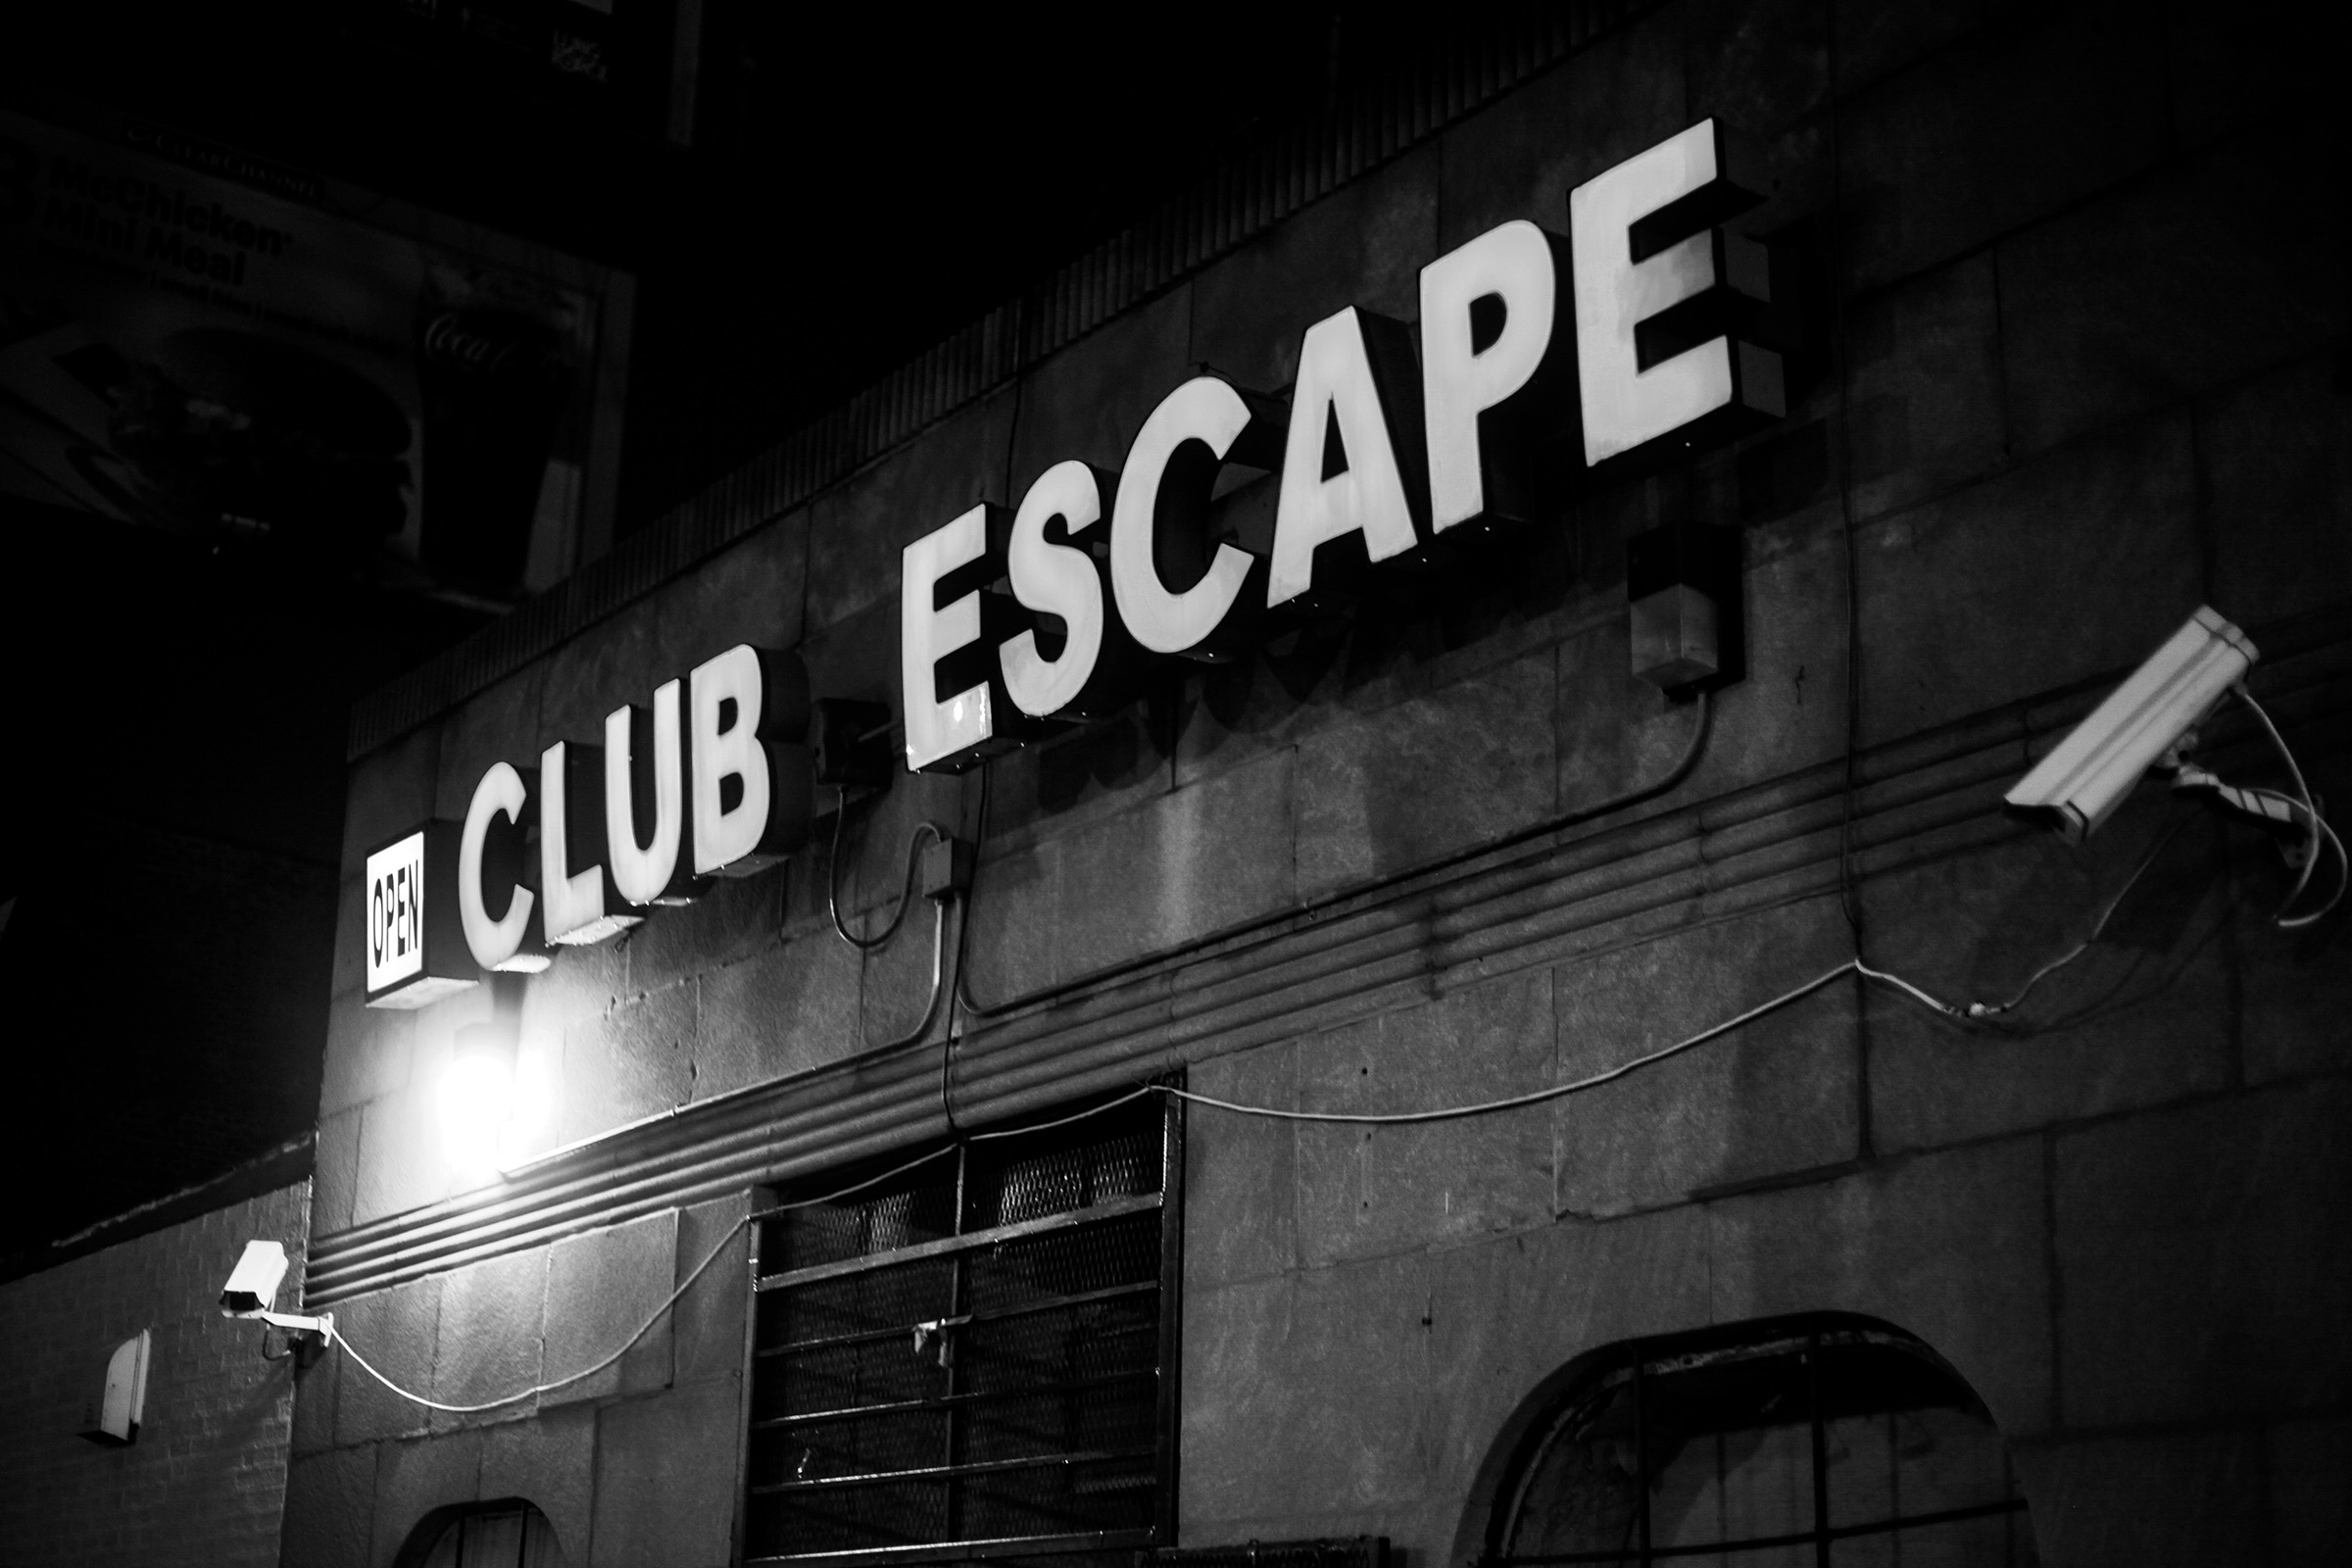 The exterior of Club Escape.